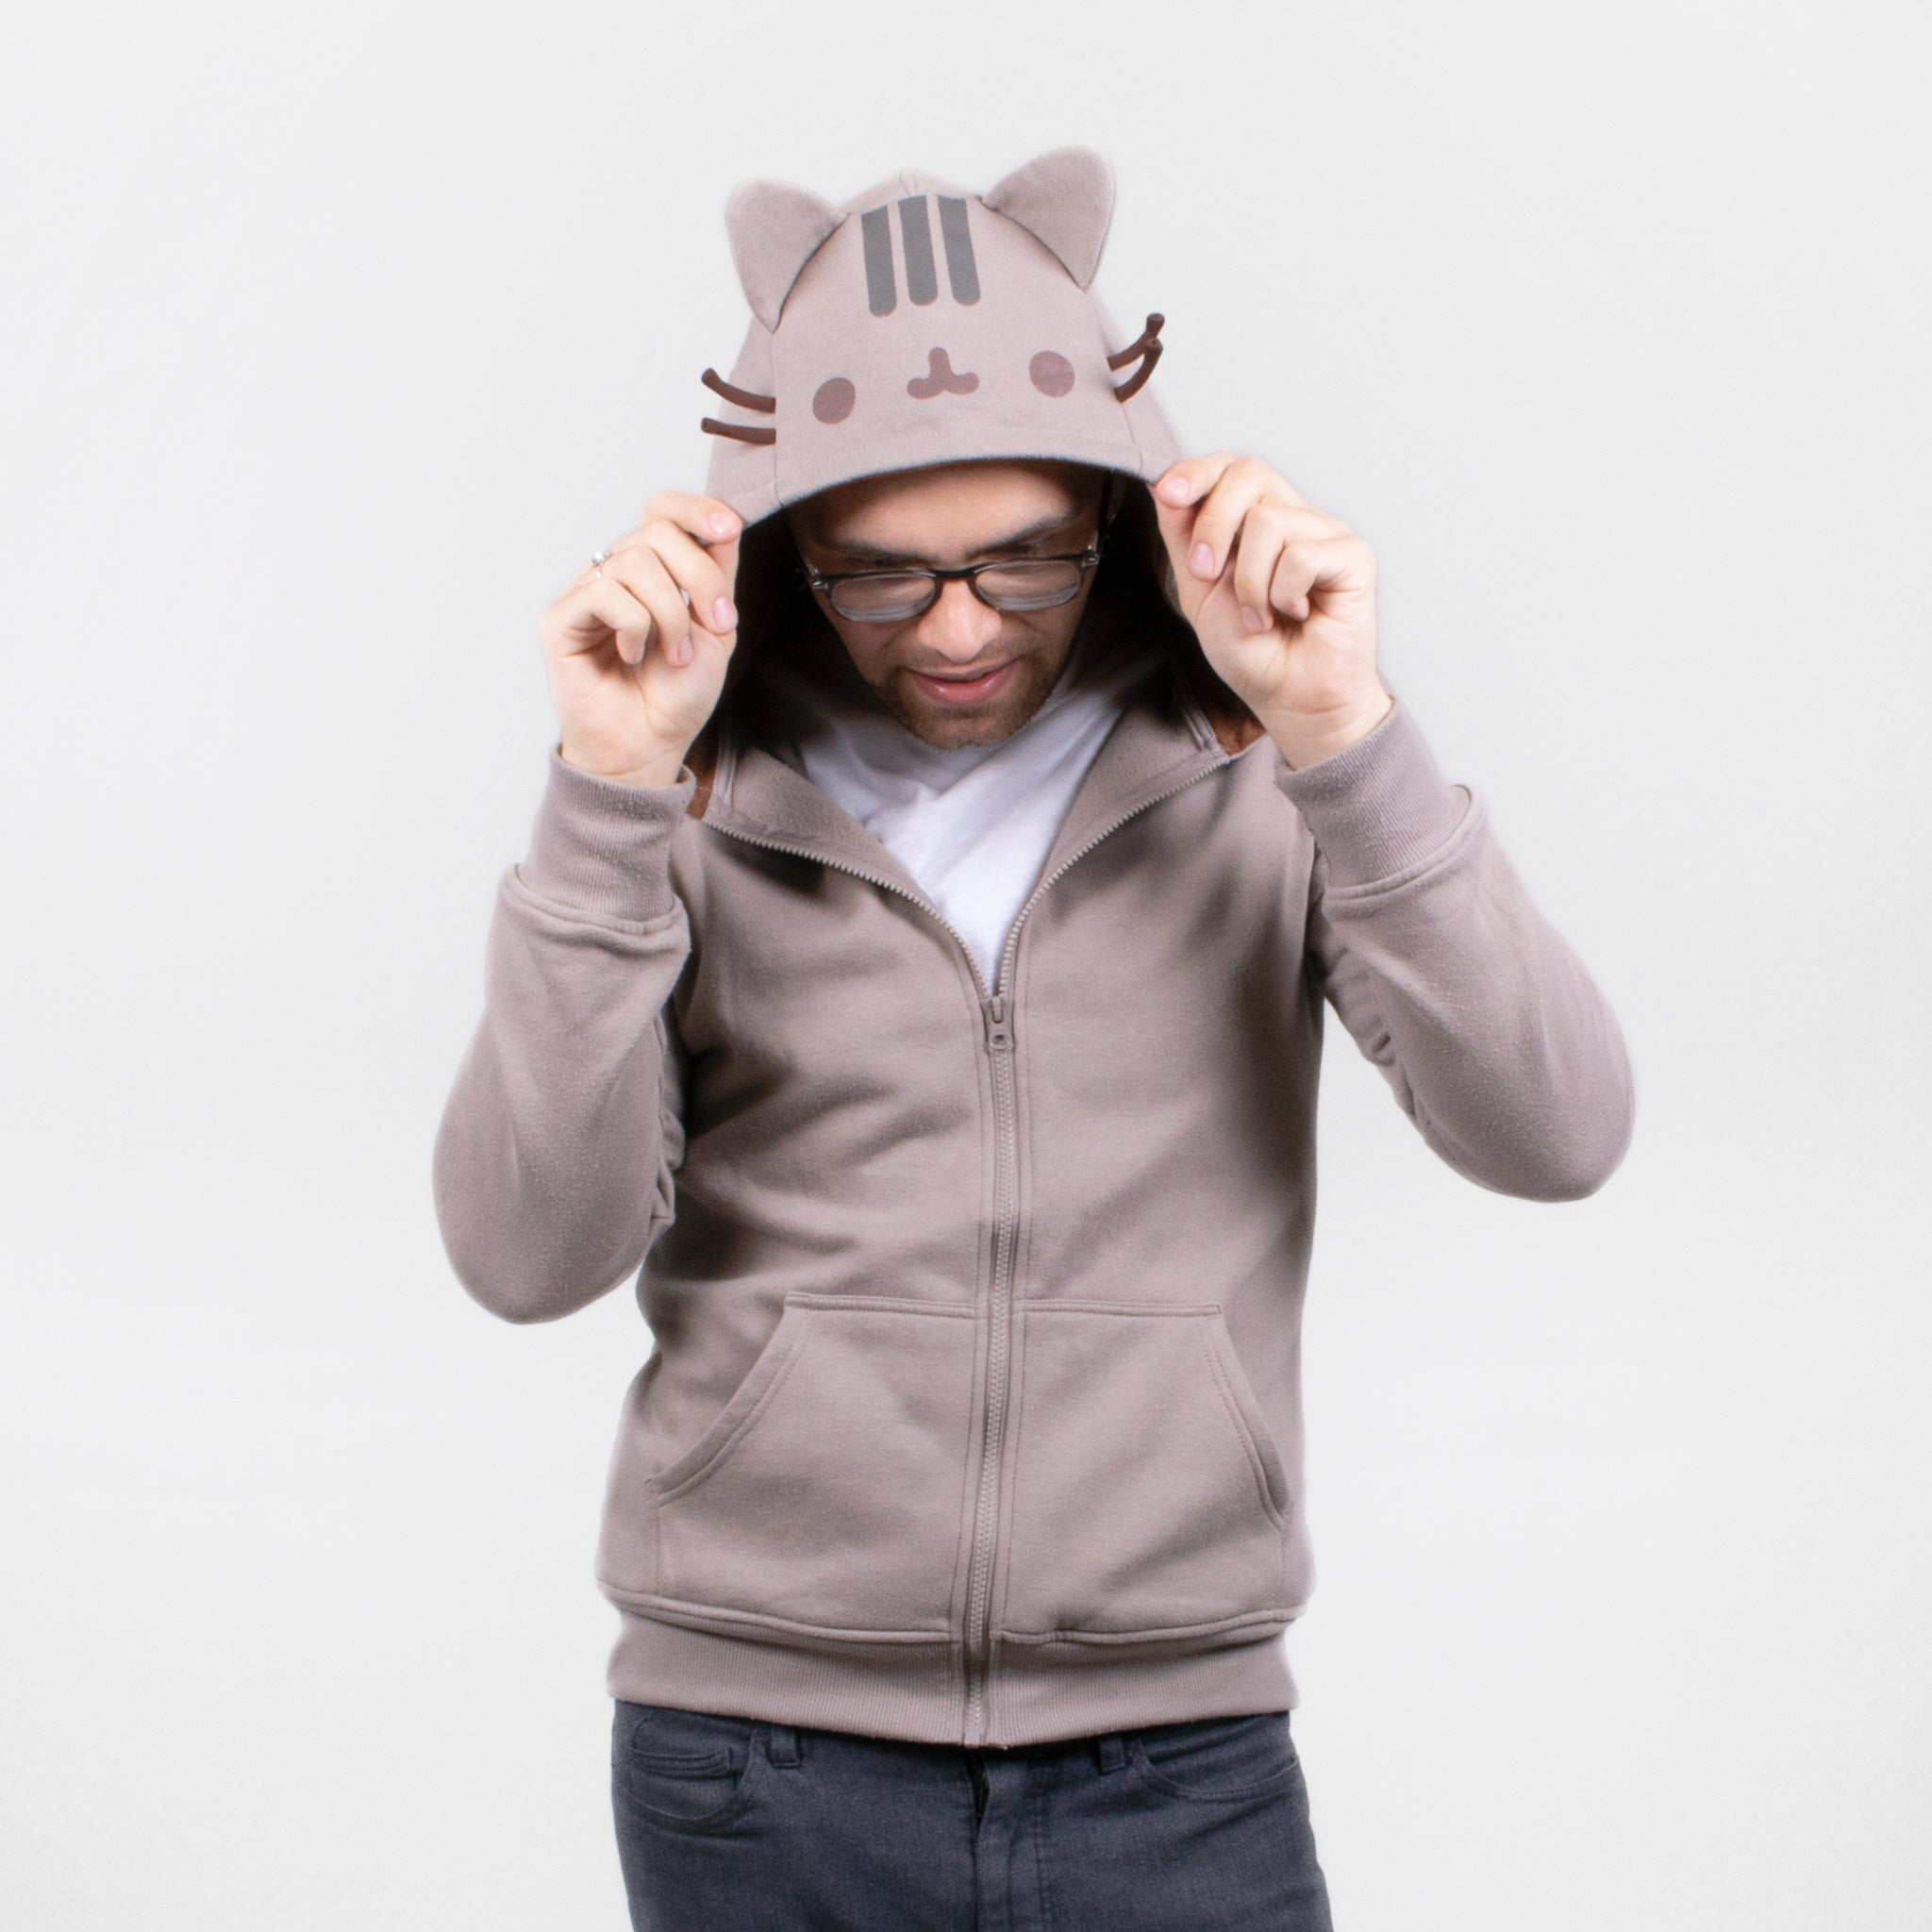 men pusheen hood hooded tail cosplay costume sweatshirt hoodie zipup apparel cute cat culturefly